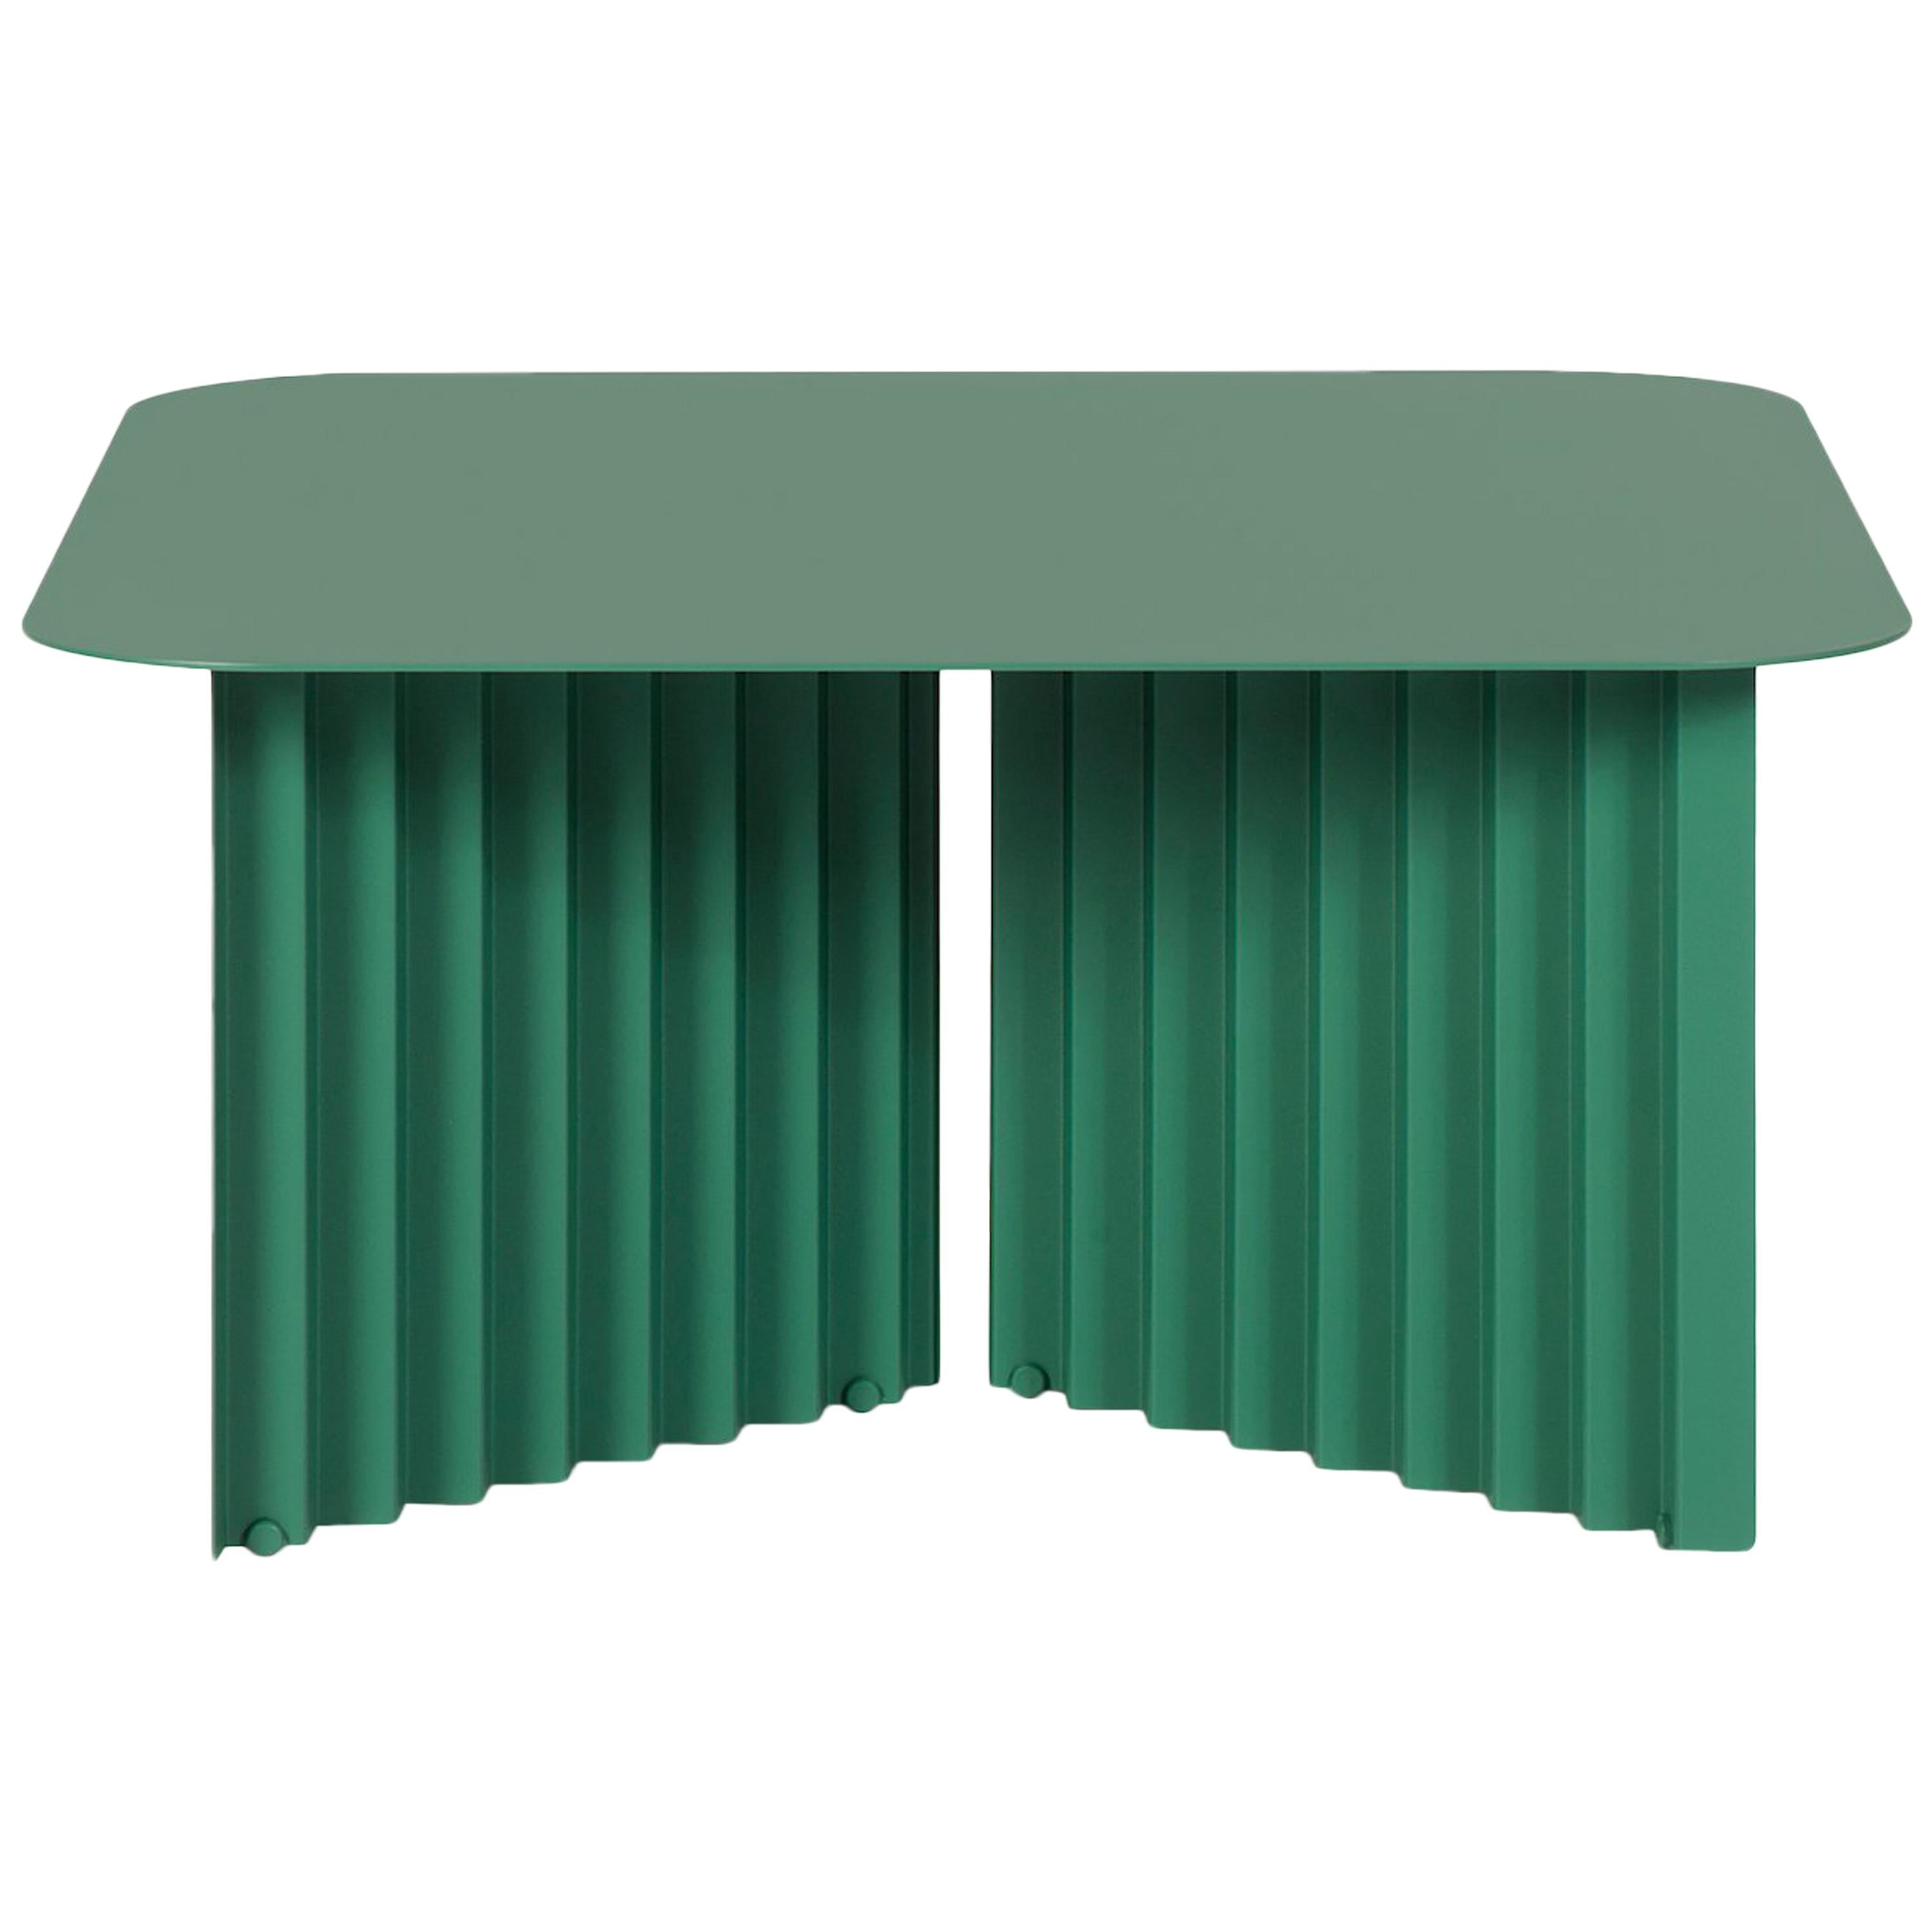 RS Barcelona Plec Medium Table in Green Metal by A.P.O.